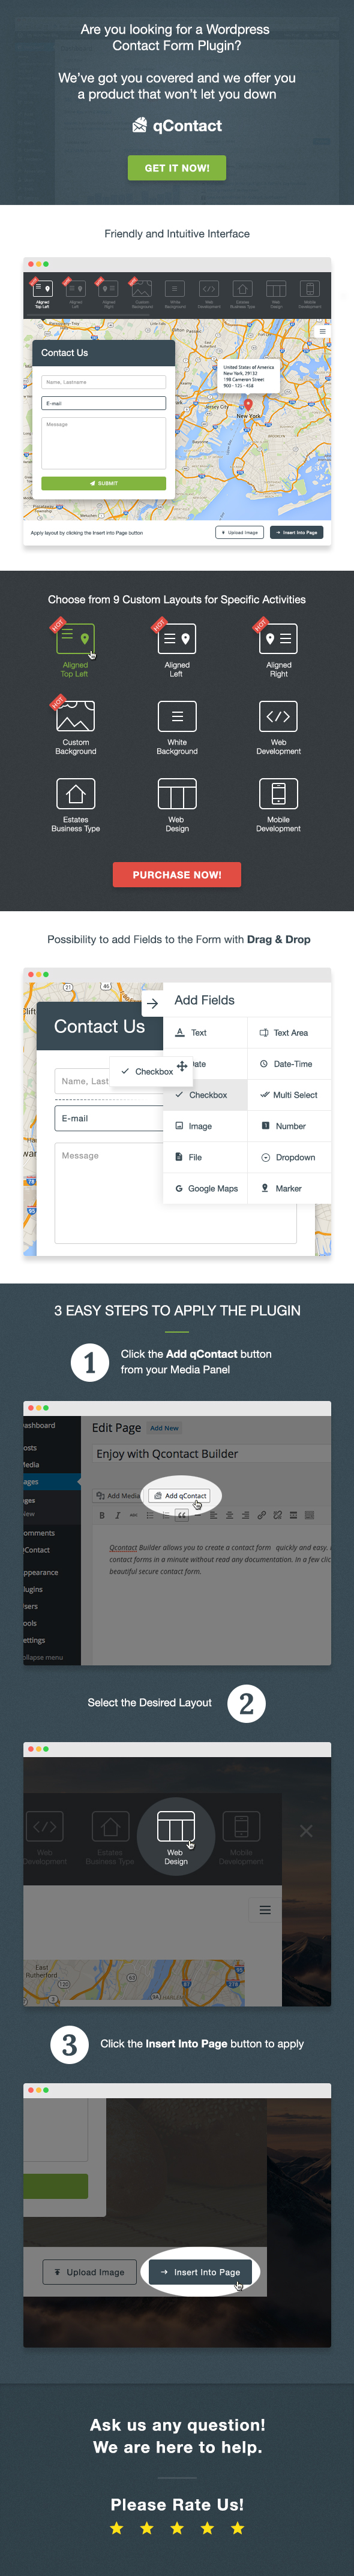 qContact Form Builder - Easy Contact Form - 4